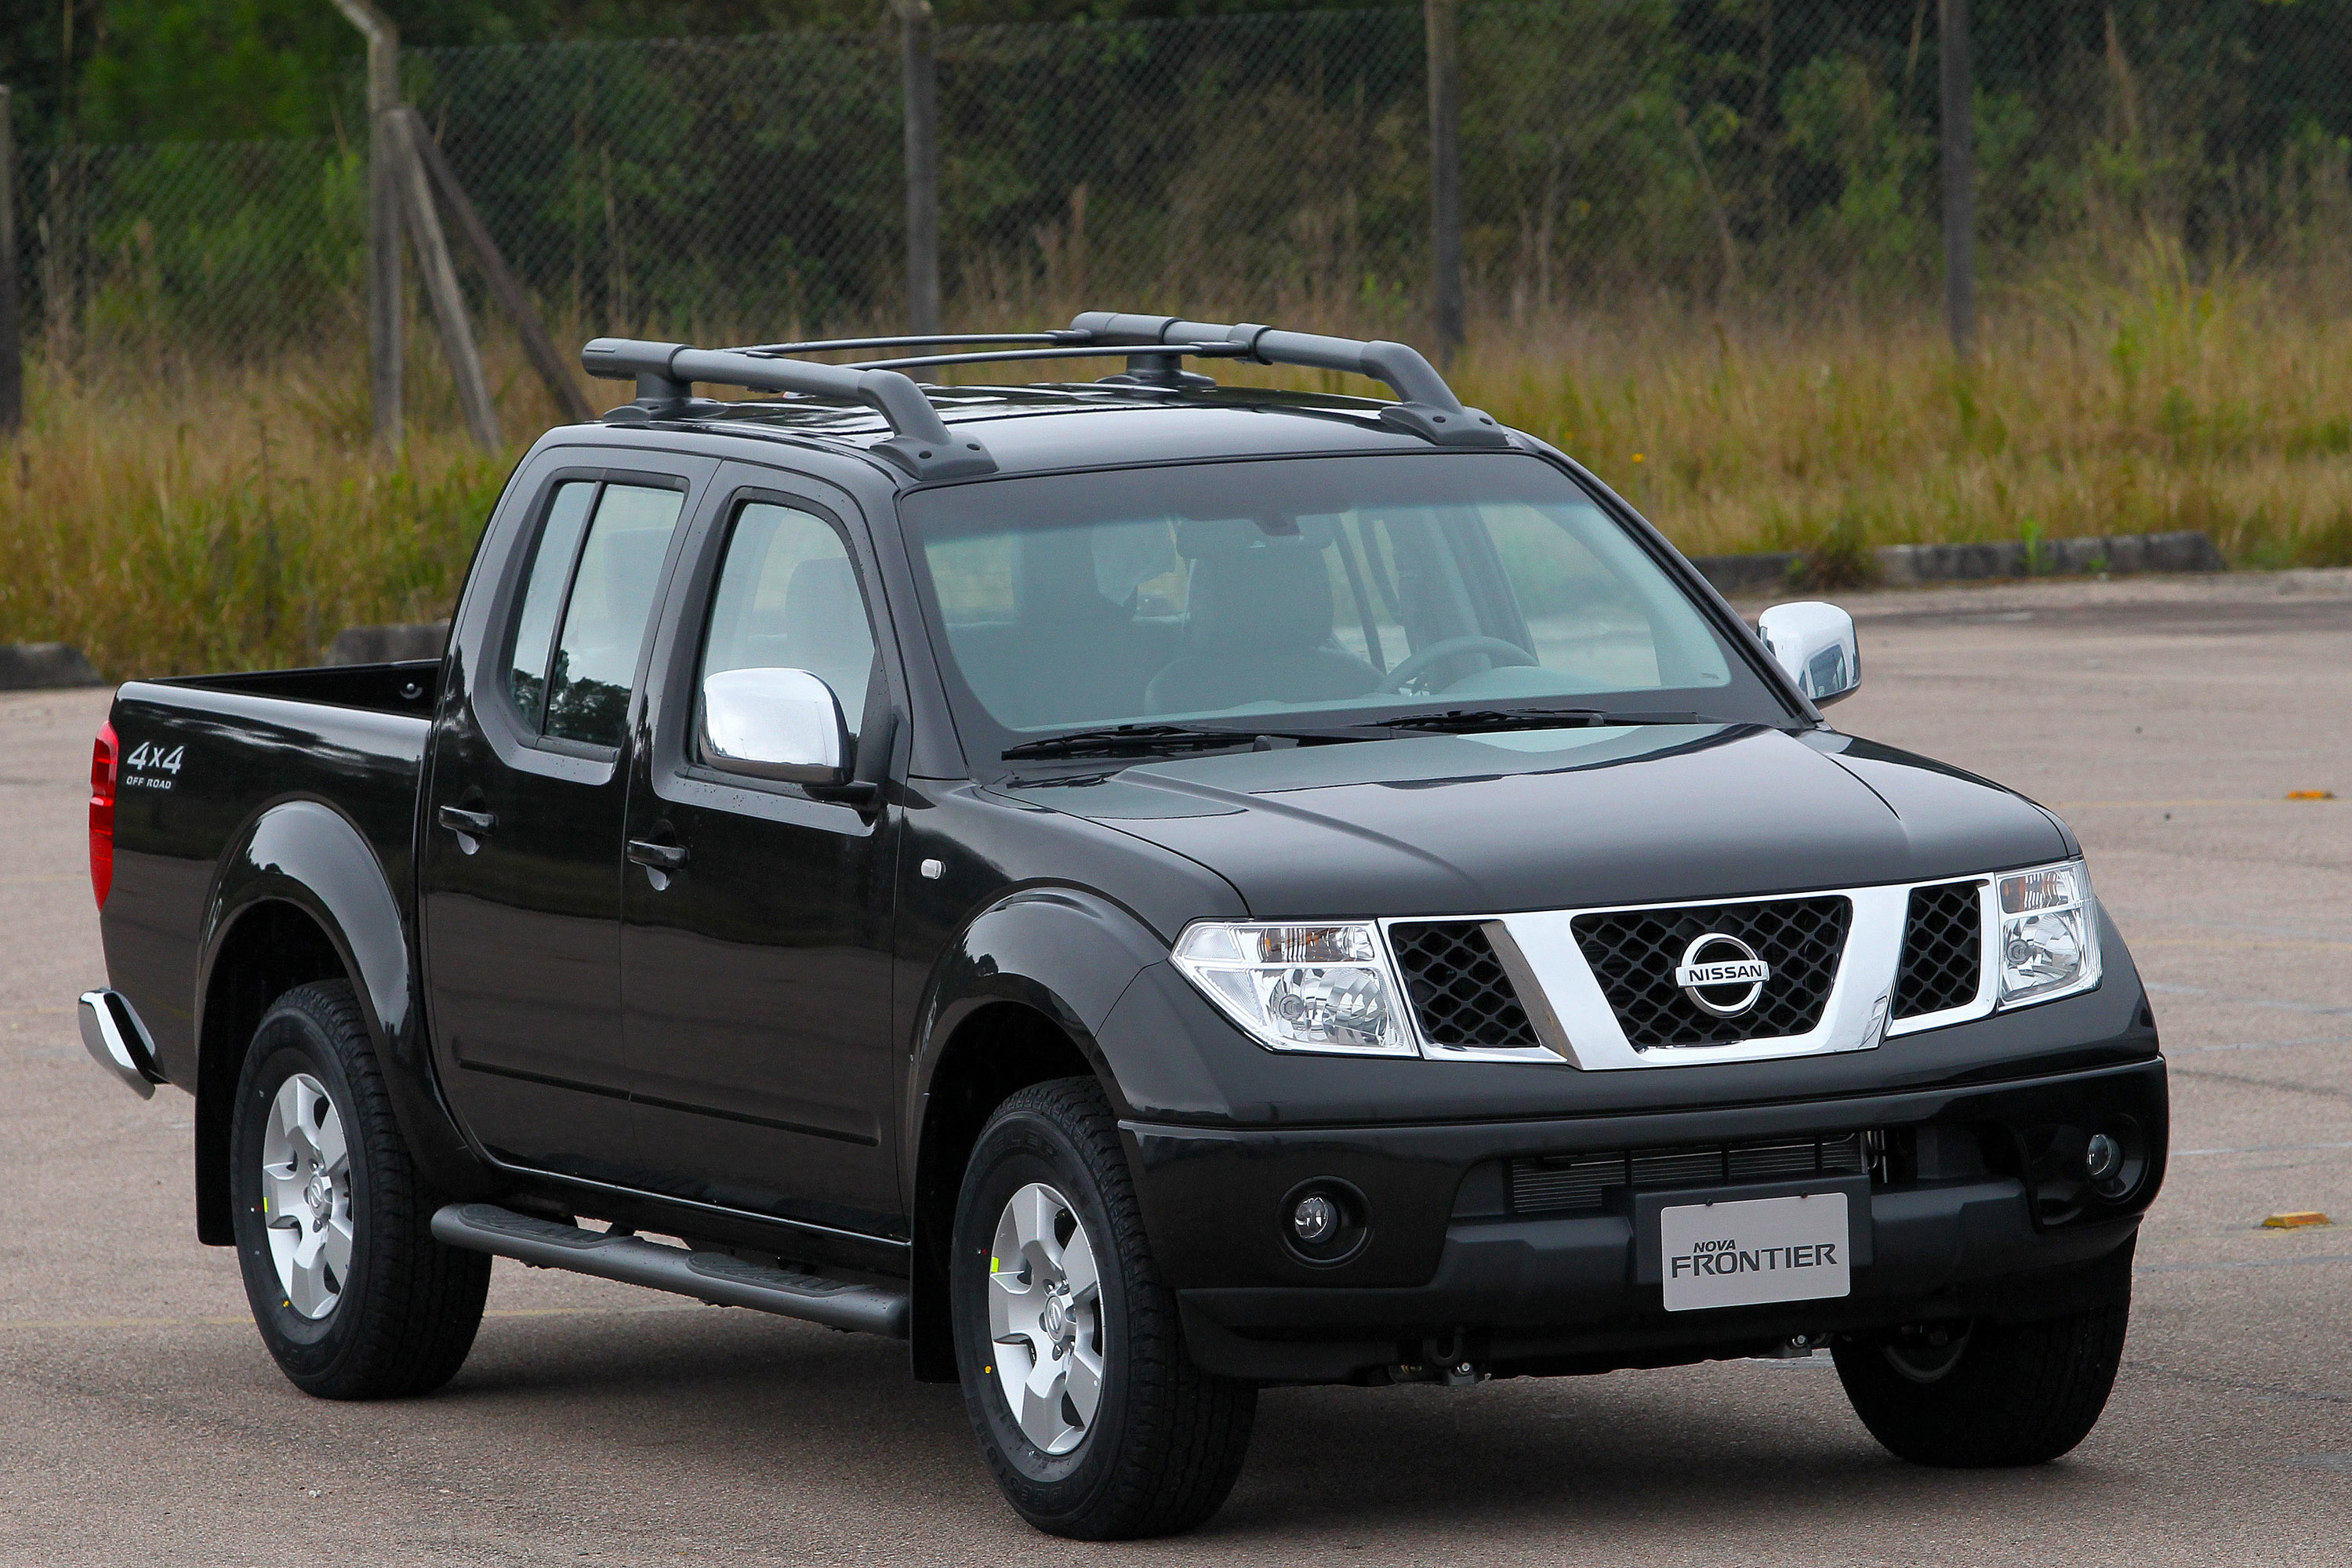 Nissan Frontier Crew Cab >> 2011 Nissan Frontier - HD Pictures @ carsinvasion.com